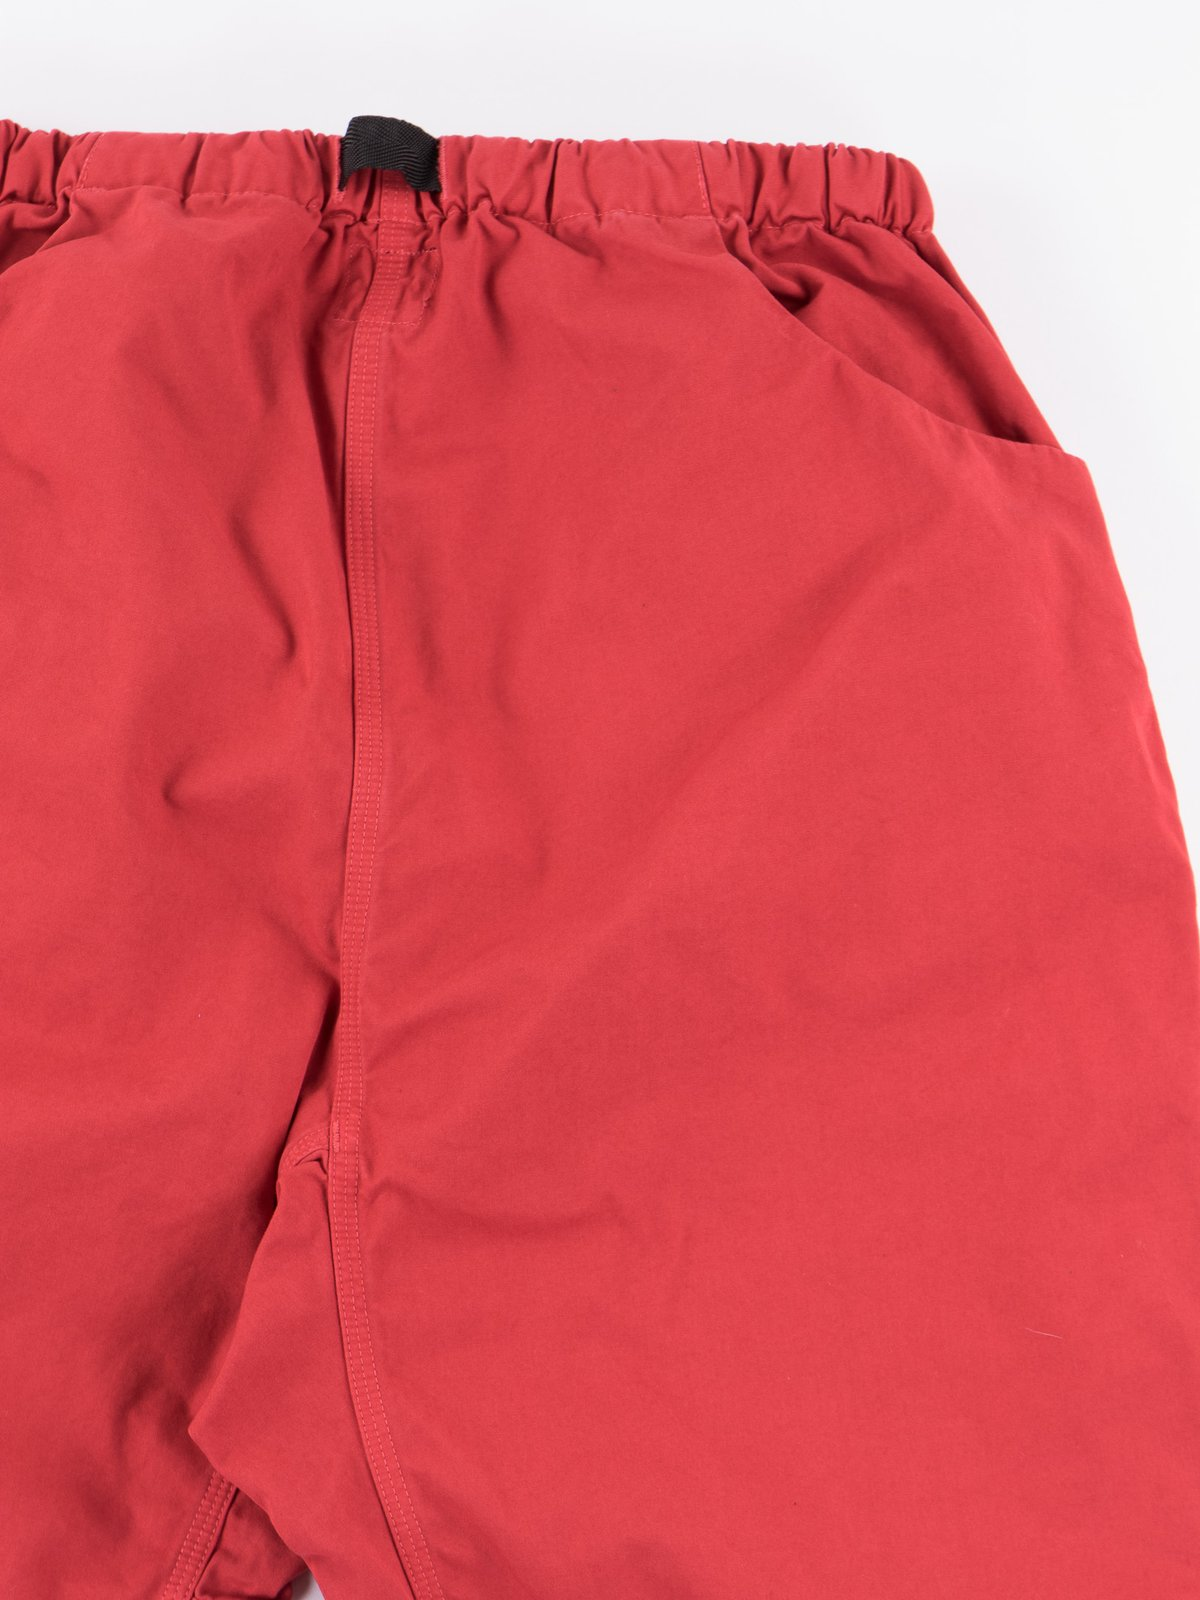 Red Overdyed Poplin Climbing Pant - Image 4